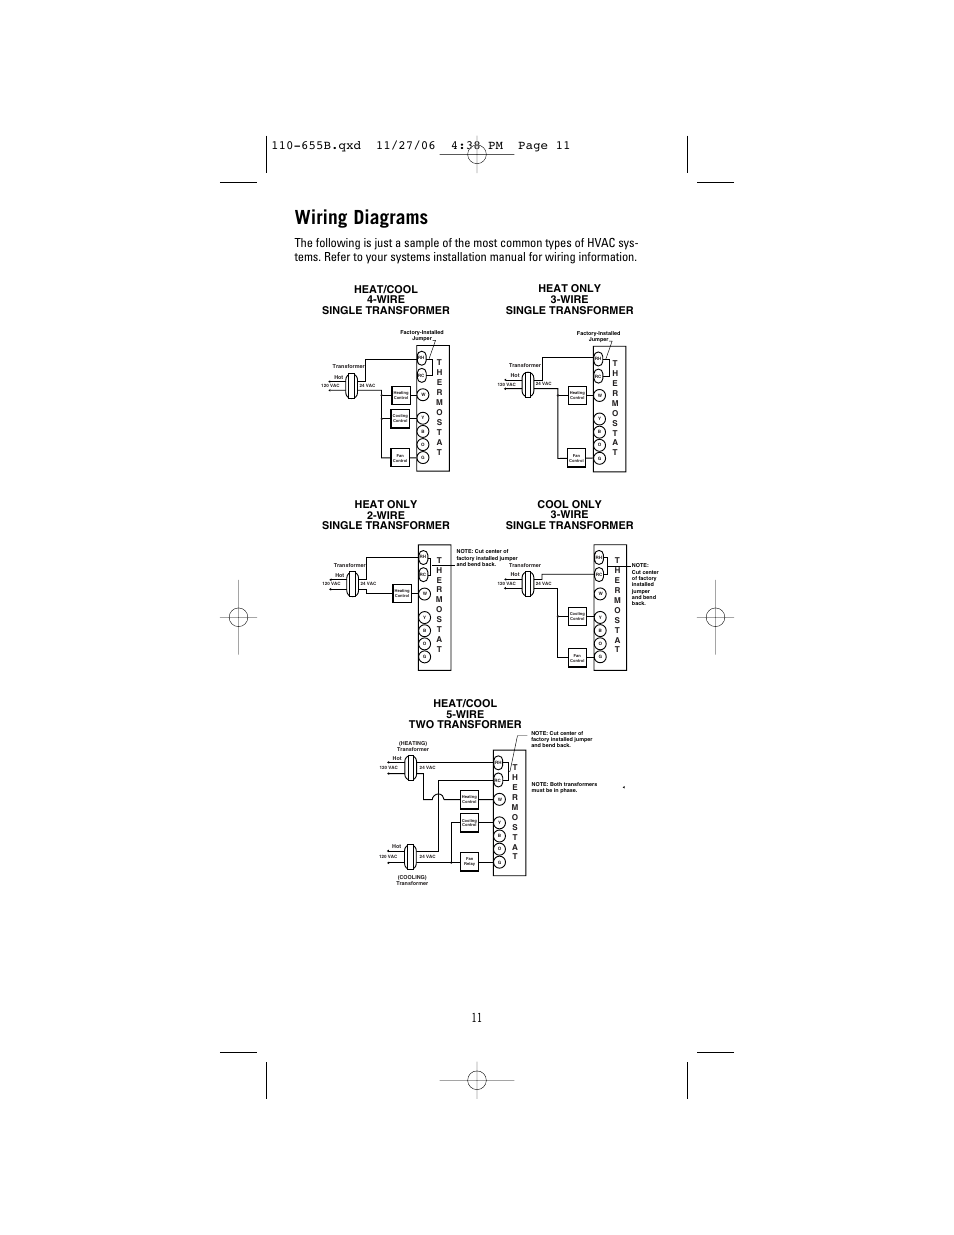 Wiring diagrams, Cool only 3-wire single transformer, Heat/cool 5-